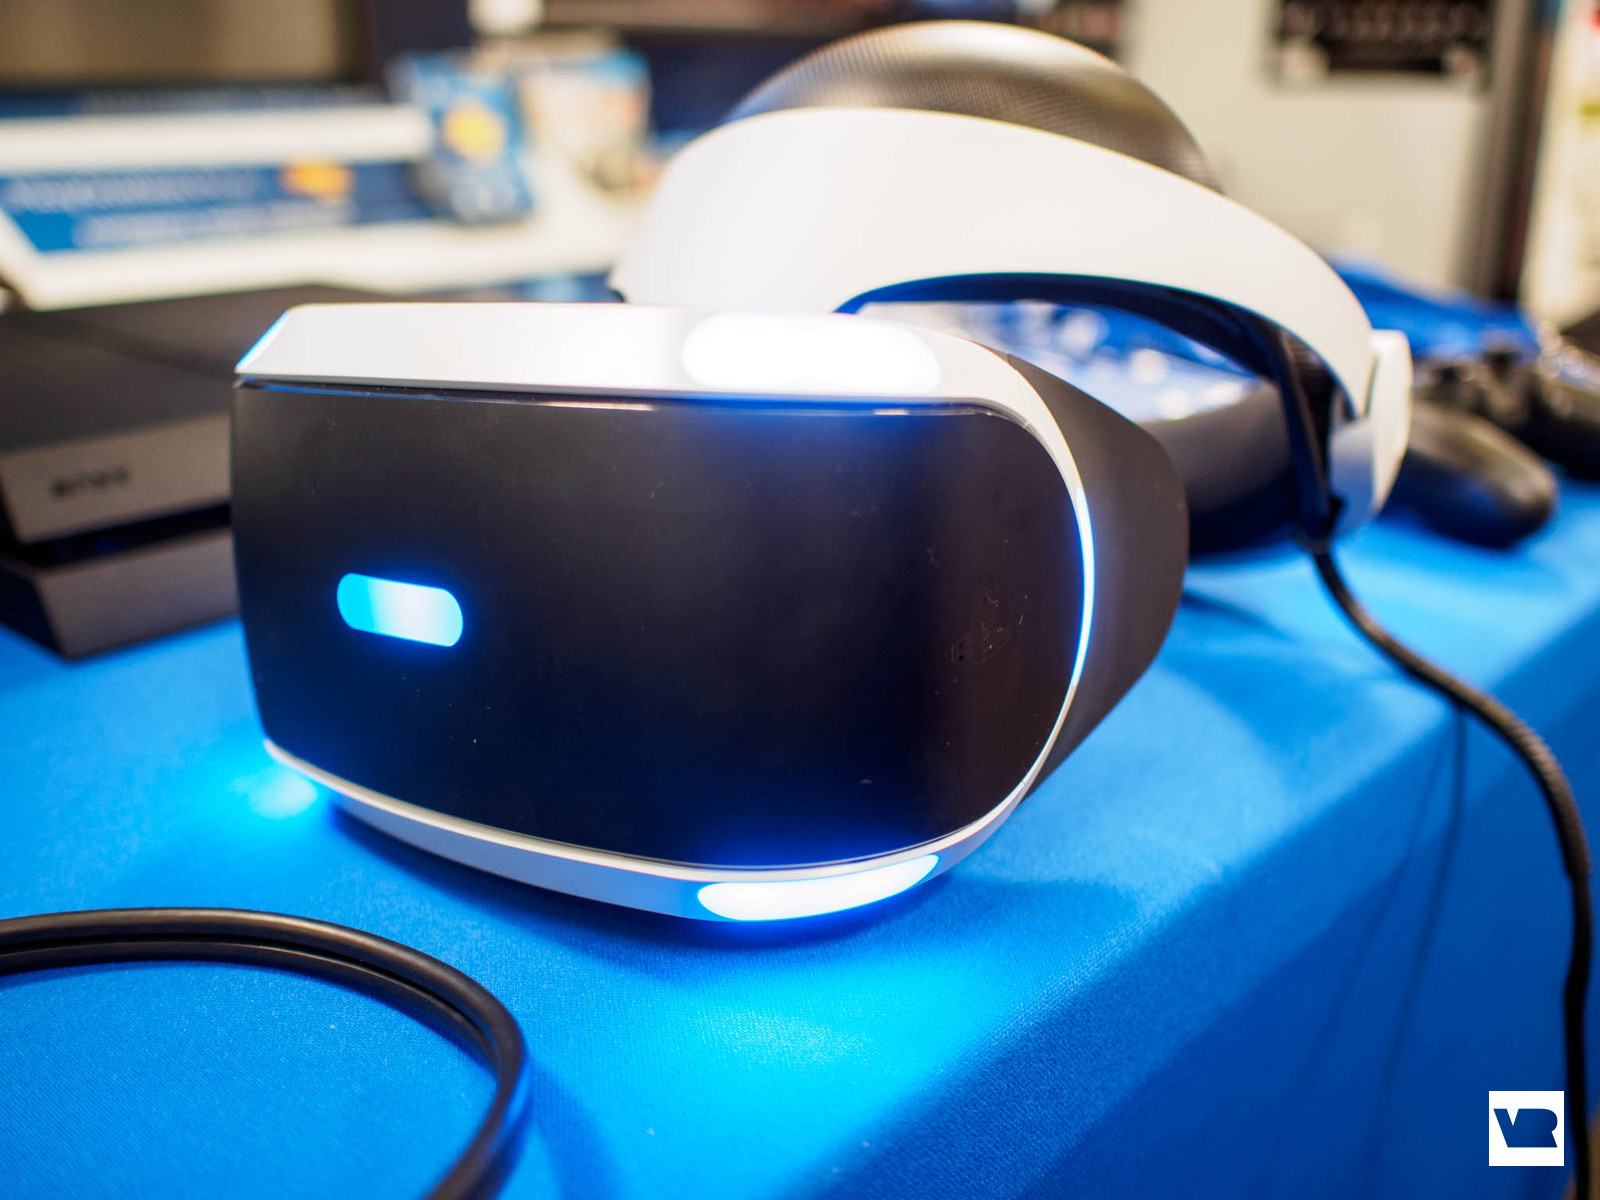 PlayStation VR: why there's no screen-door effect